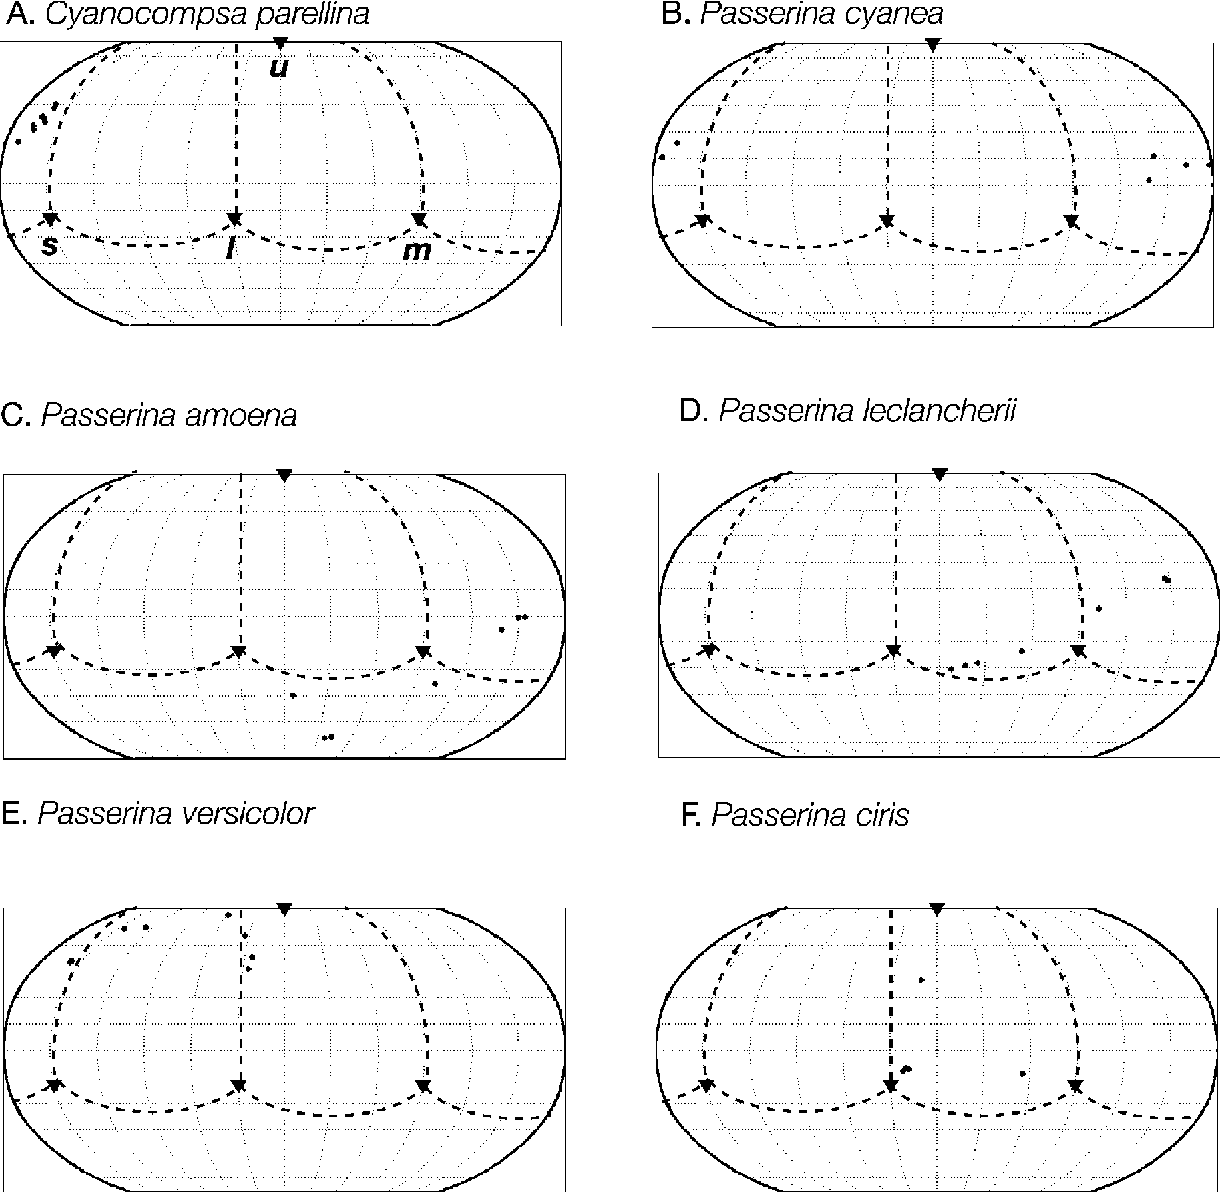 Figure 5: Robinson projections of the hues of the plumage patches of males of six species of Cyanocompsa and Passerina buntings. A, Cyanocompsa parellina; B, Passerina cyanea; C, Passerina amoena; D, Passerina leclancherii; E, Passerina versicolor ; F, Passerina ciris. The distribution of dots indicates the variation in hue among the colors of the plumage patches of each species, given by the azimuth and elevation angles v and f, equivalent to longitude and latitude, respectively. The hue vectors are projected onto a sphere centered at the achromatic origin, and the sphere is depicted using the Robinson projection, a two-dimensional representation of the surface of the earth. Triangles indicate the u, s, m, and l vertices of the tetrahedron (labeled in A). The dotted lines indicate the spherical projection of the four edges of the color tetrahedron. The data are projected as if the observer were looking downward onto the equator of the spherical surface.